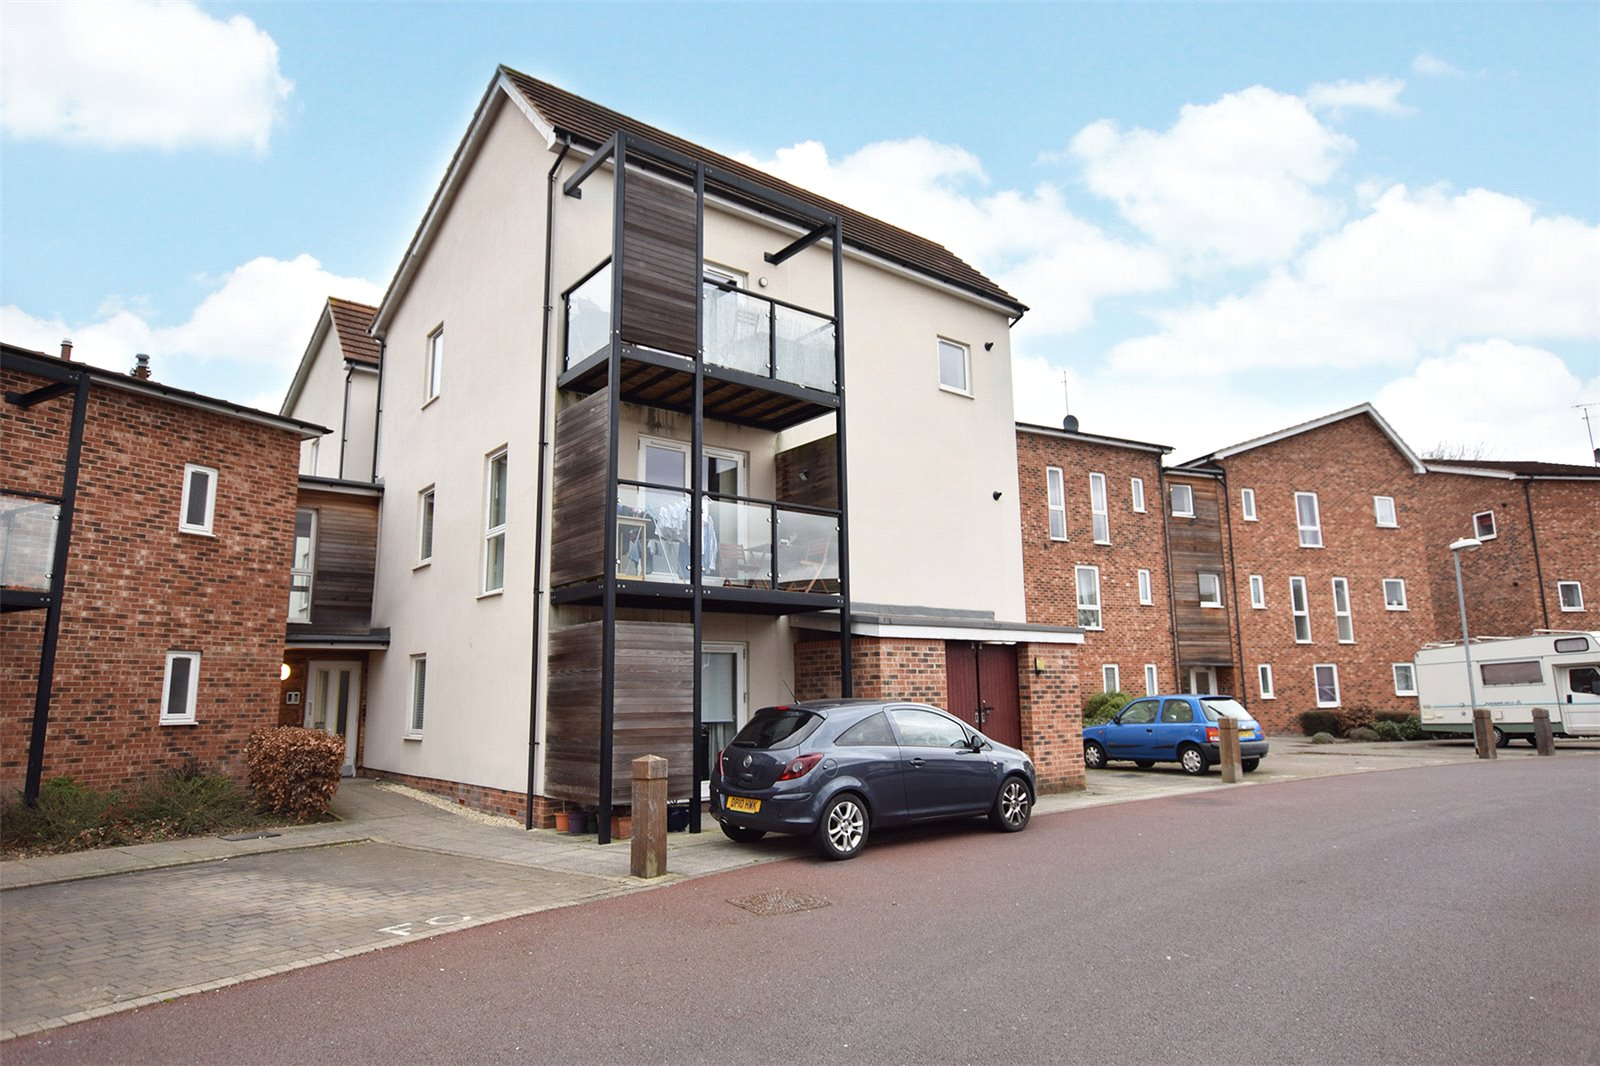 2 Bedrooms Apartment Flat for sale in Hampden Crescent, Bracknell, Berkshire, RG12